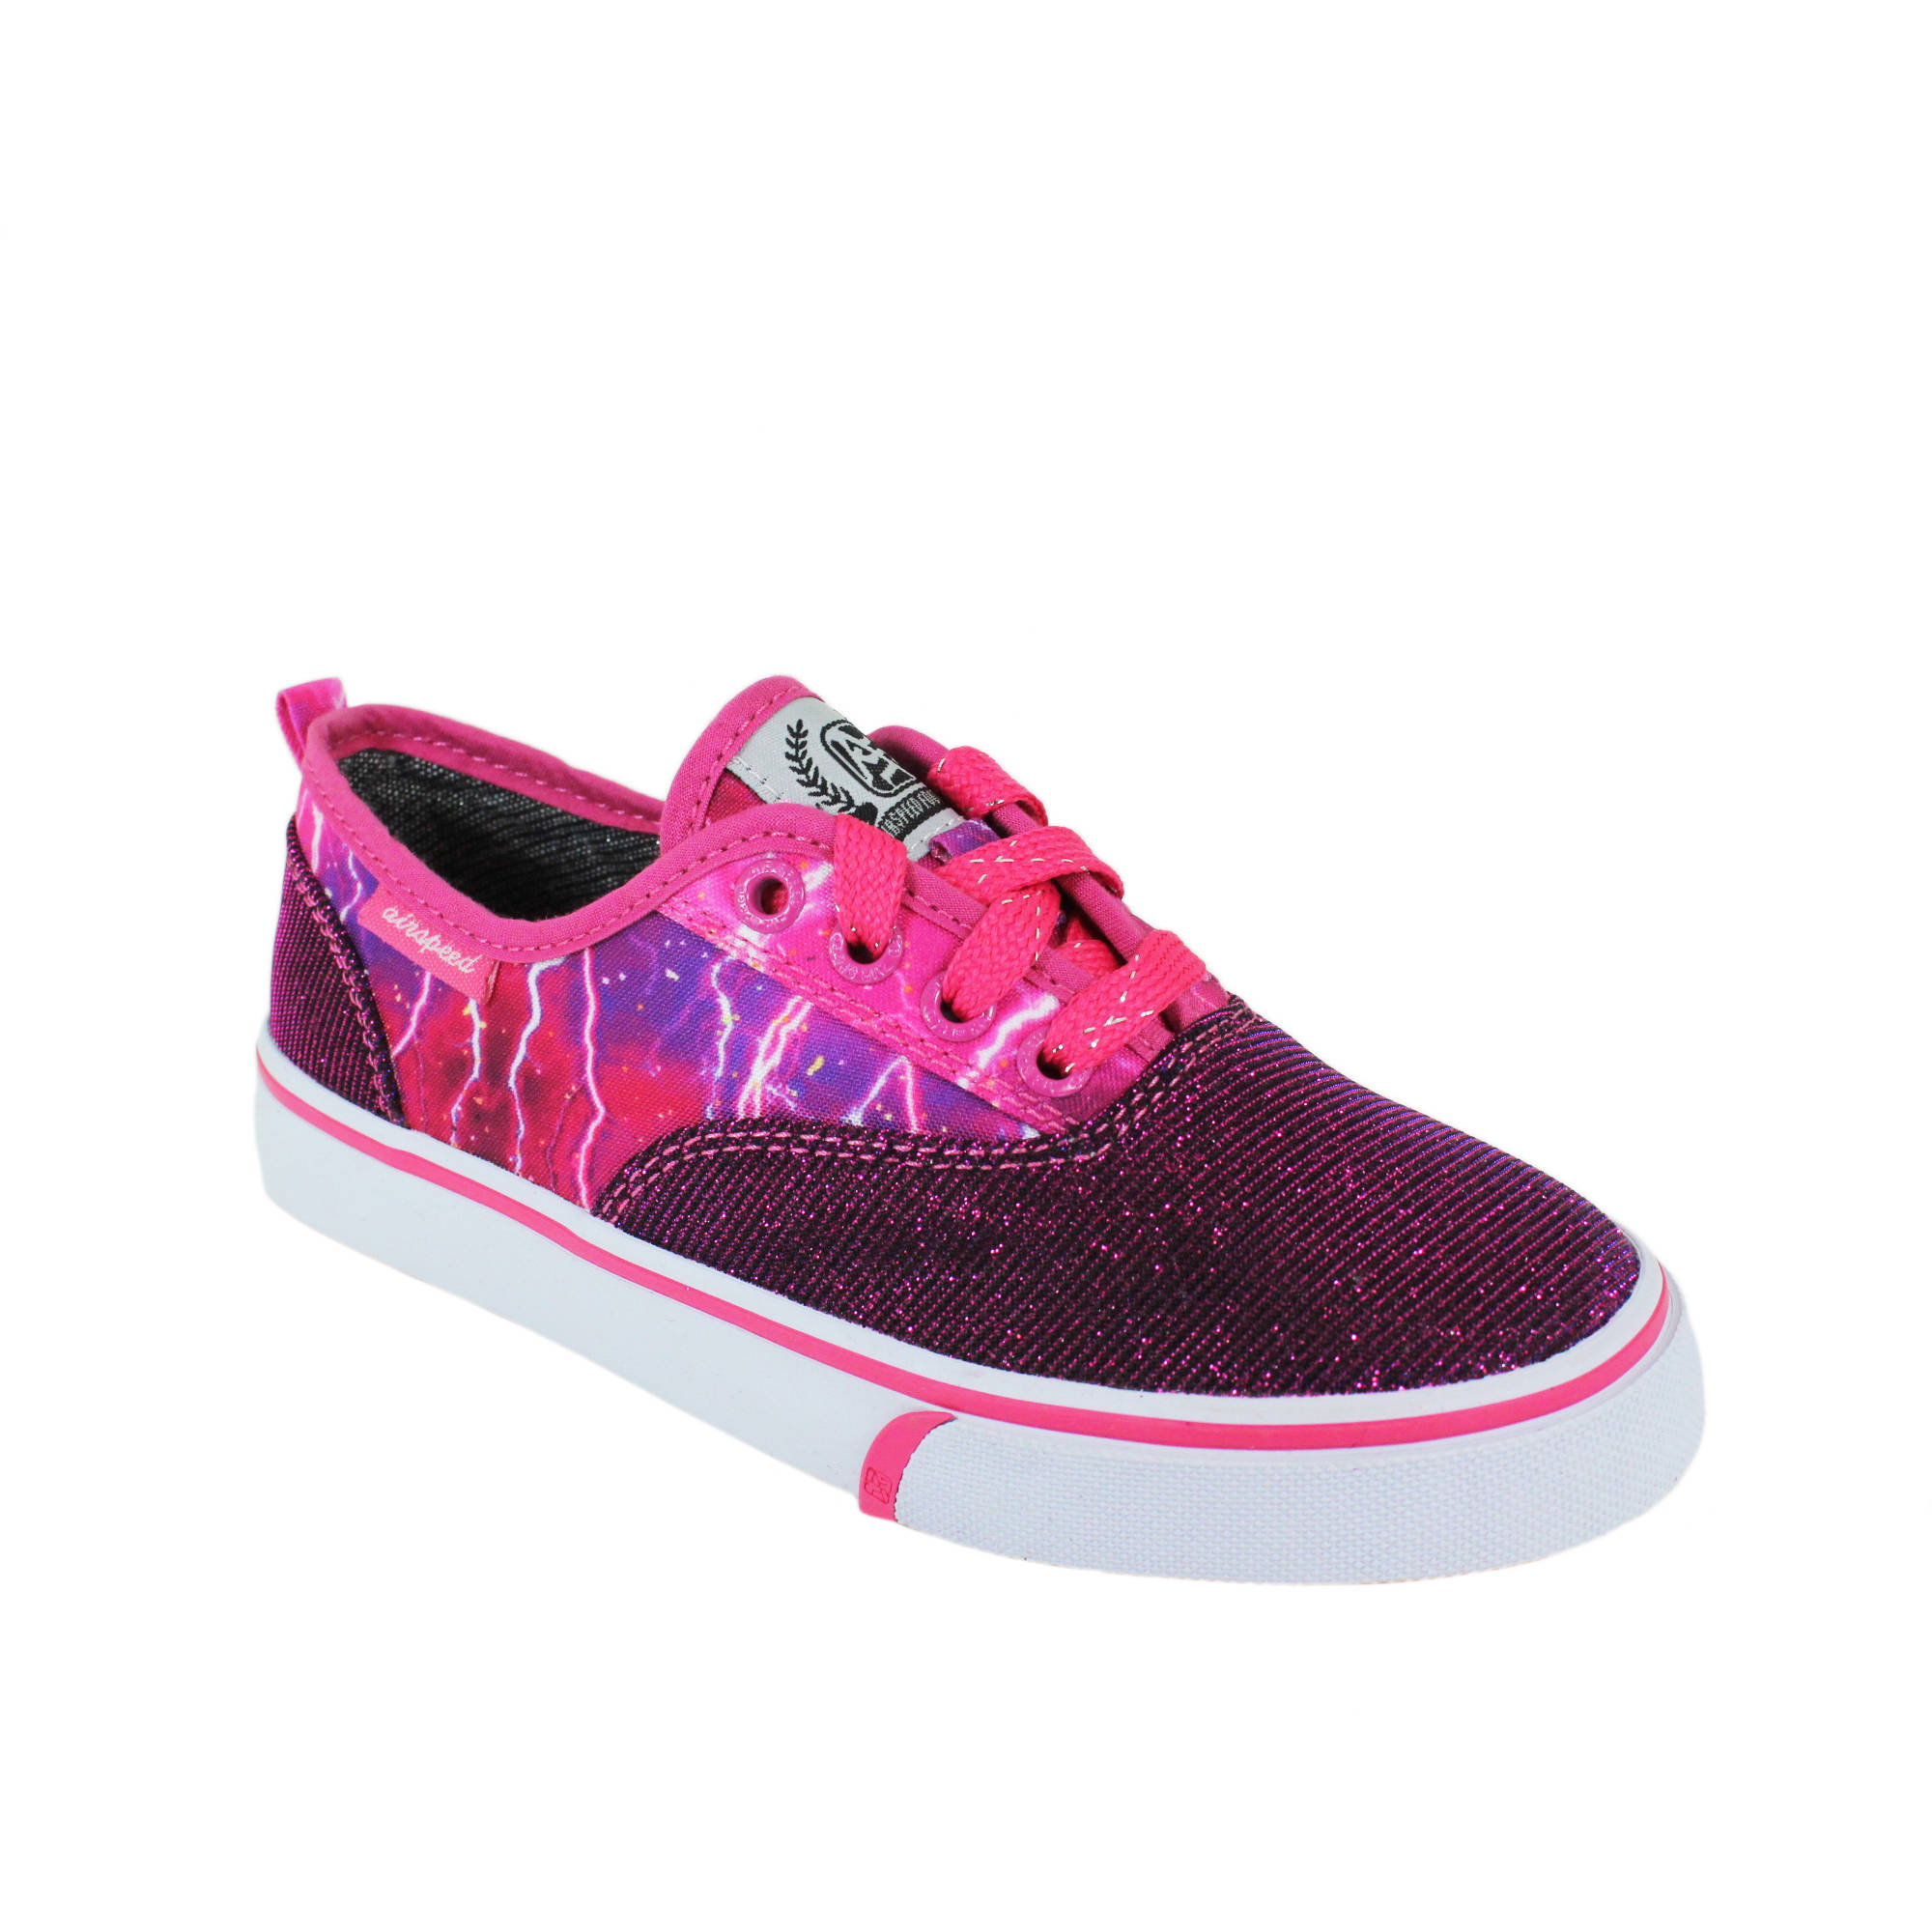 Image of Airspeed Girls' Canvas Sneaker with Shimmer Toe